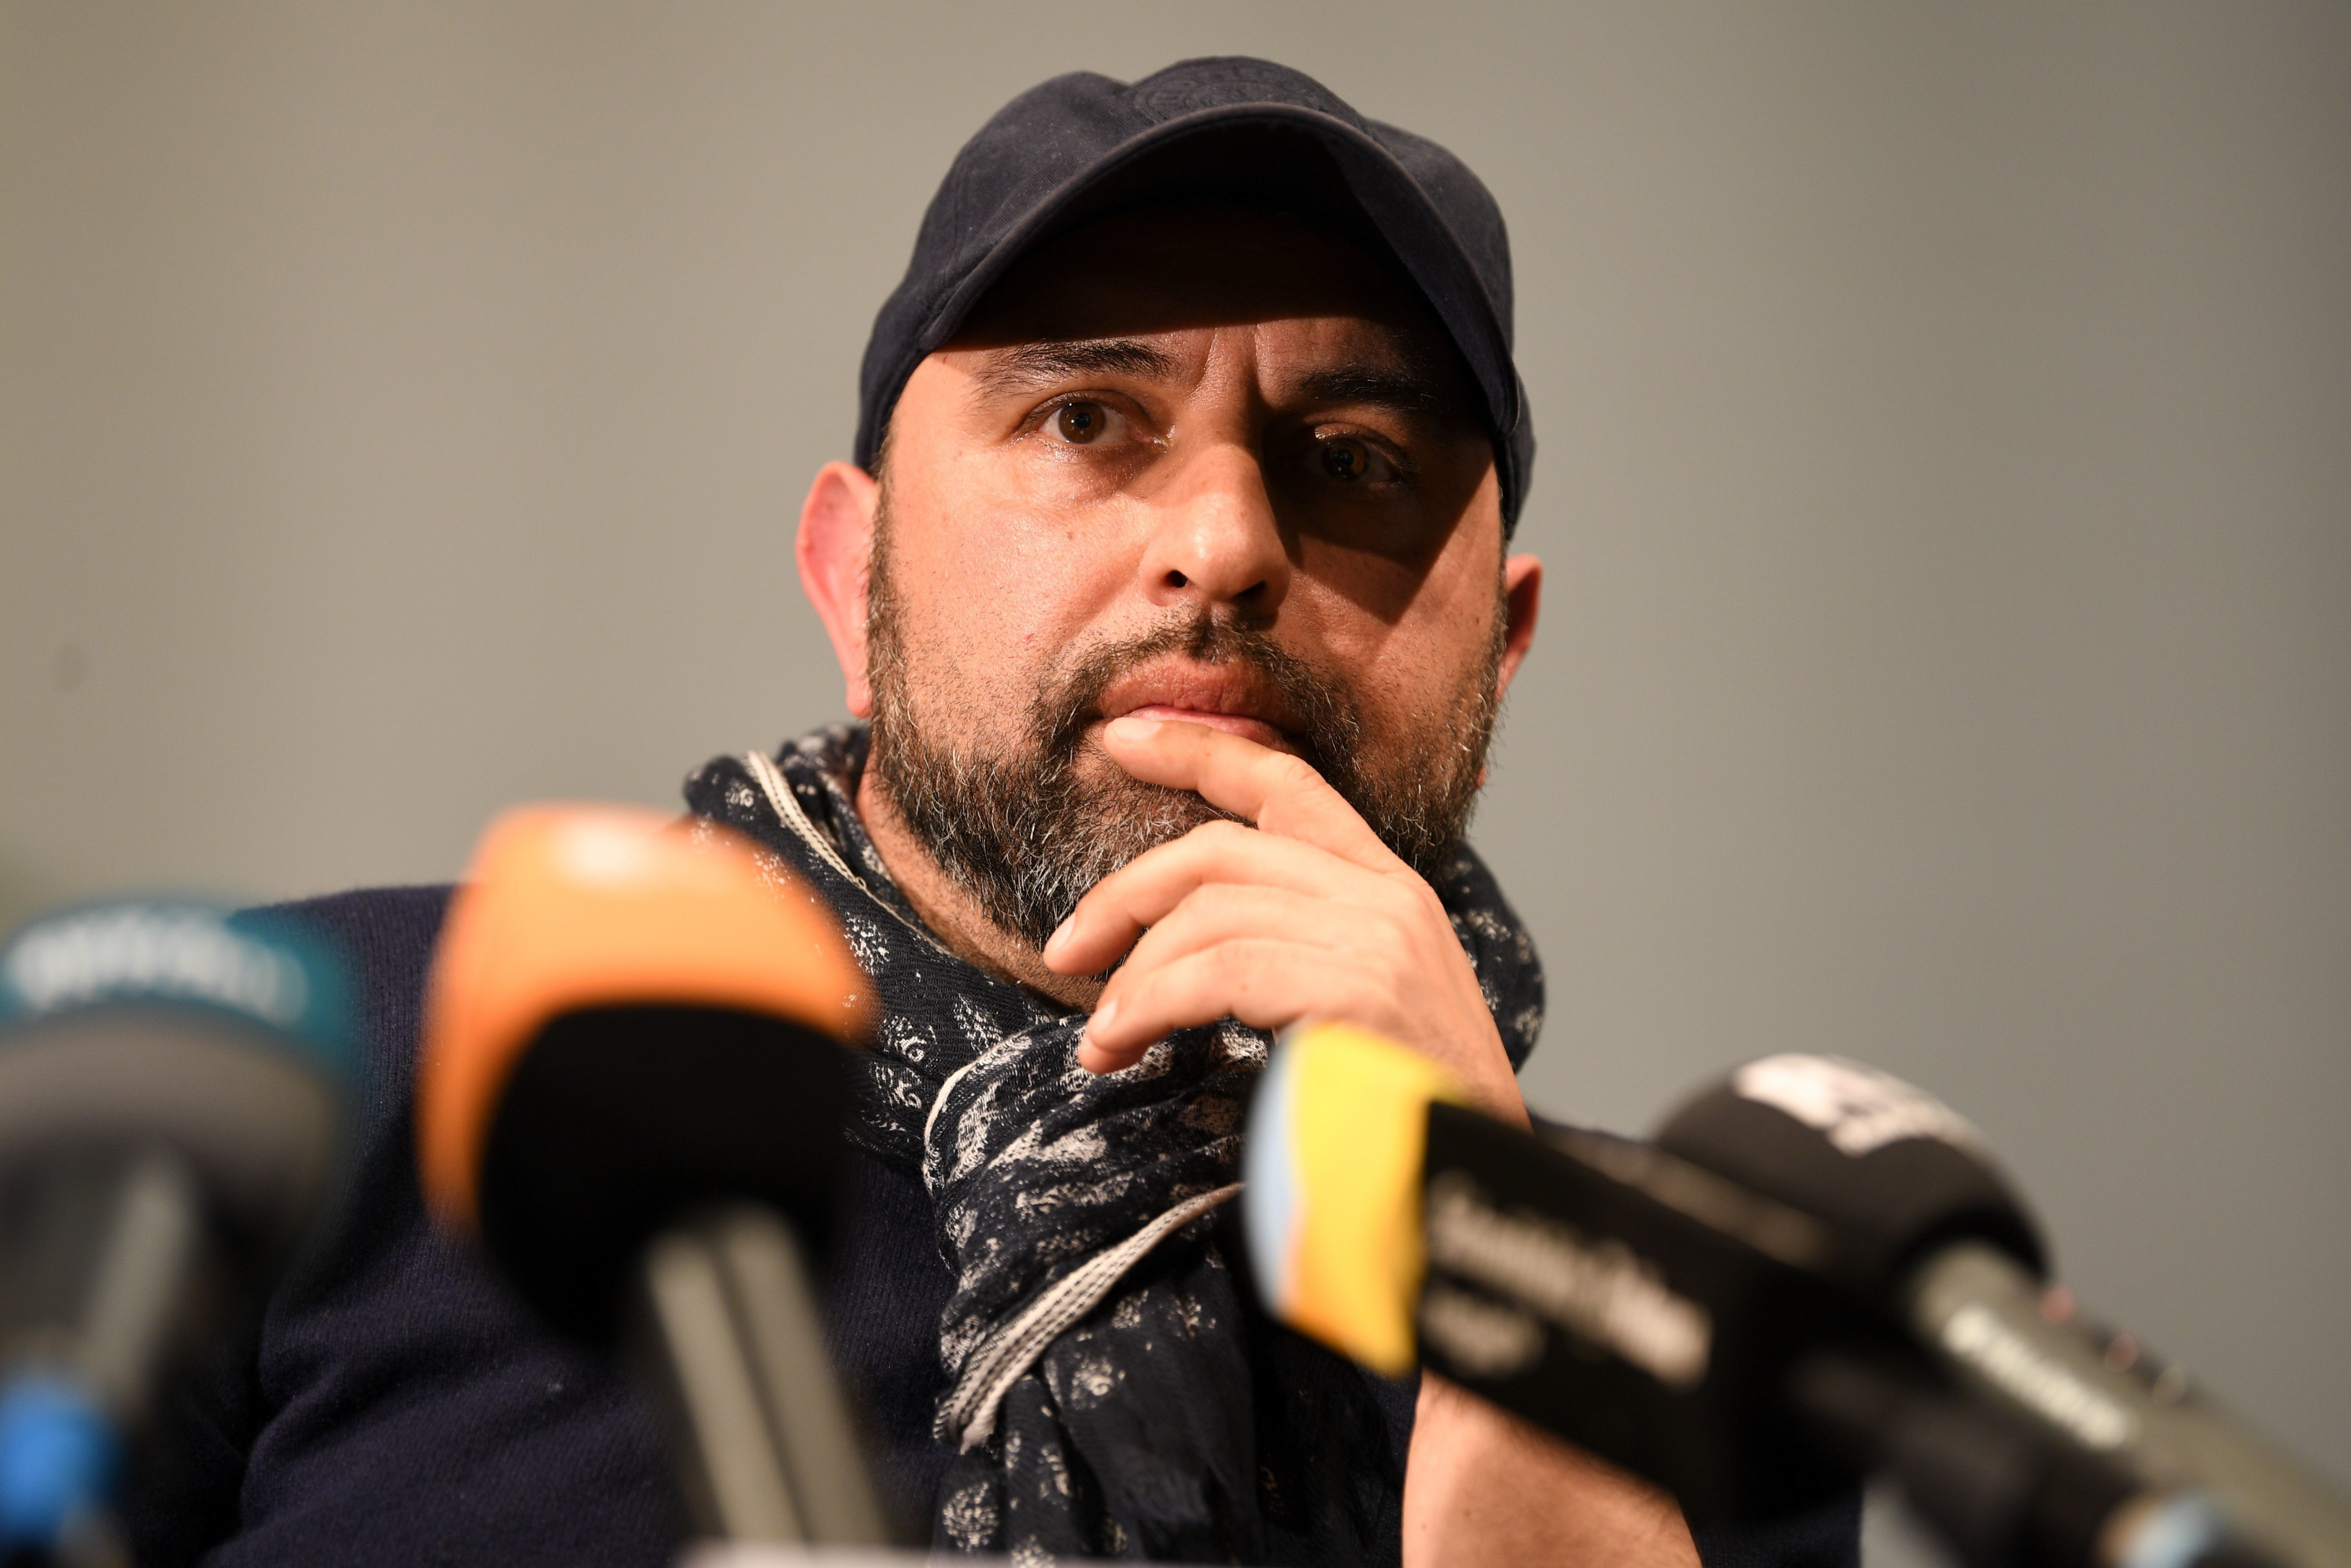 Theatre director Serdar Somuncu speaks during a press conference Wednesday after local prosecutors began looking into th